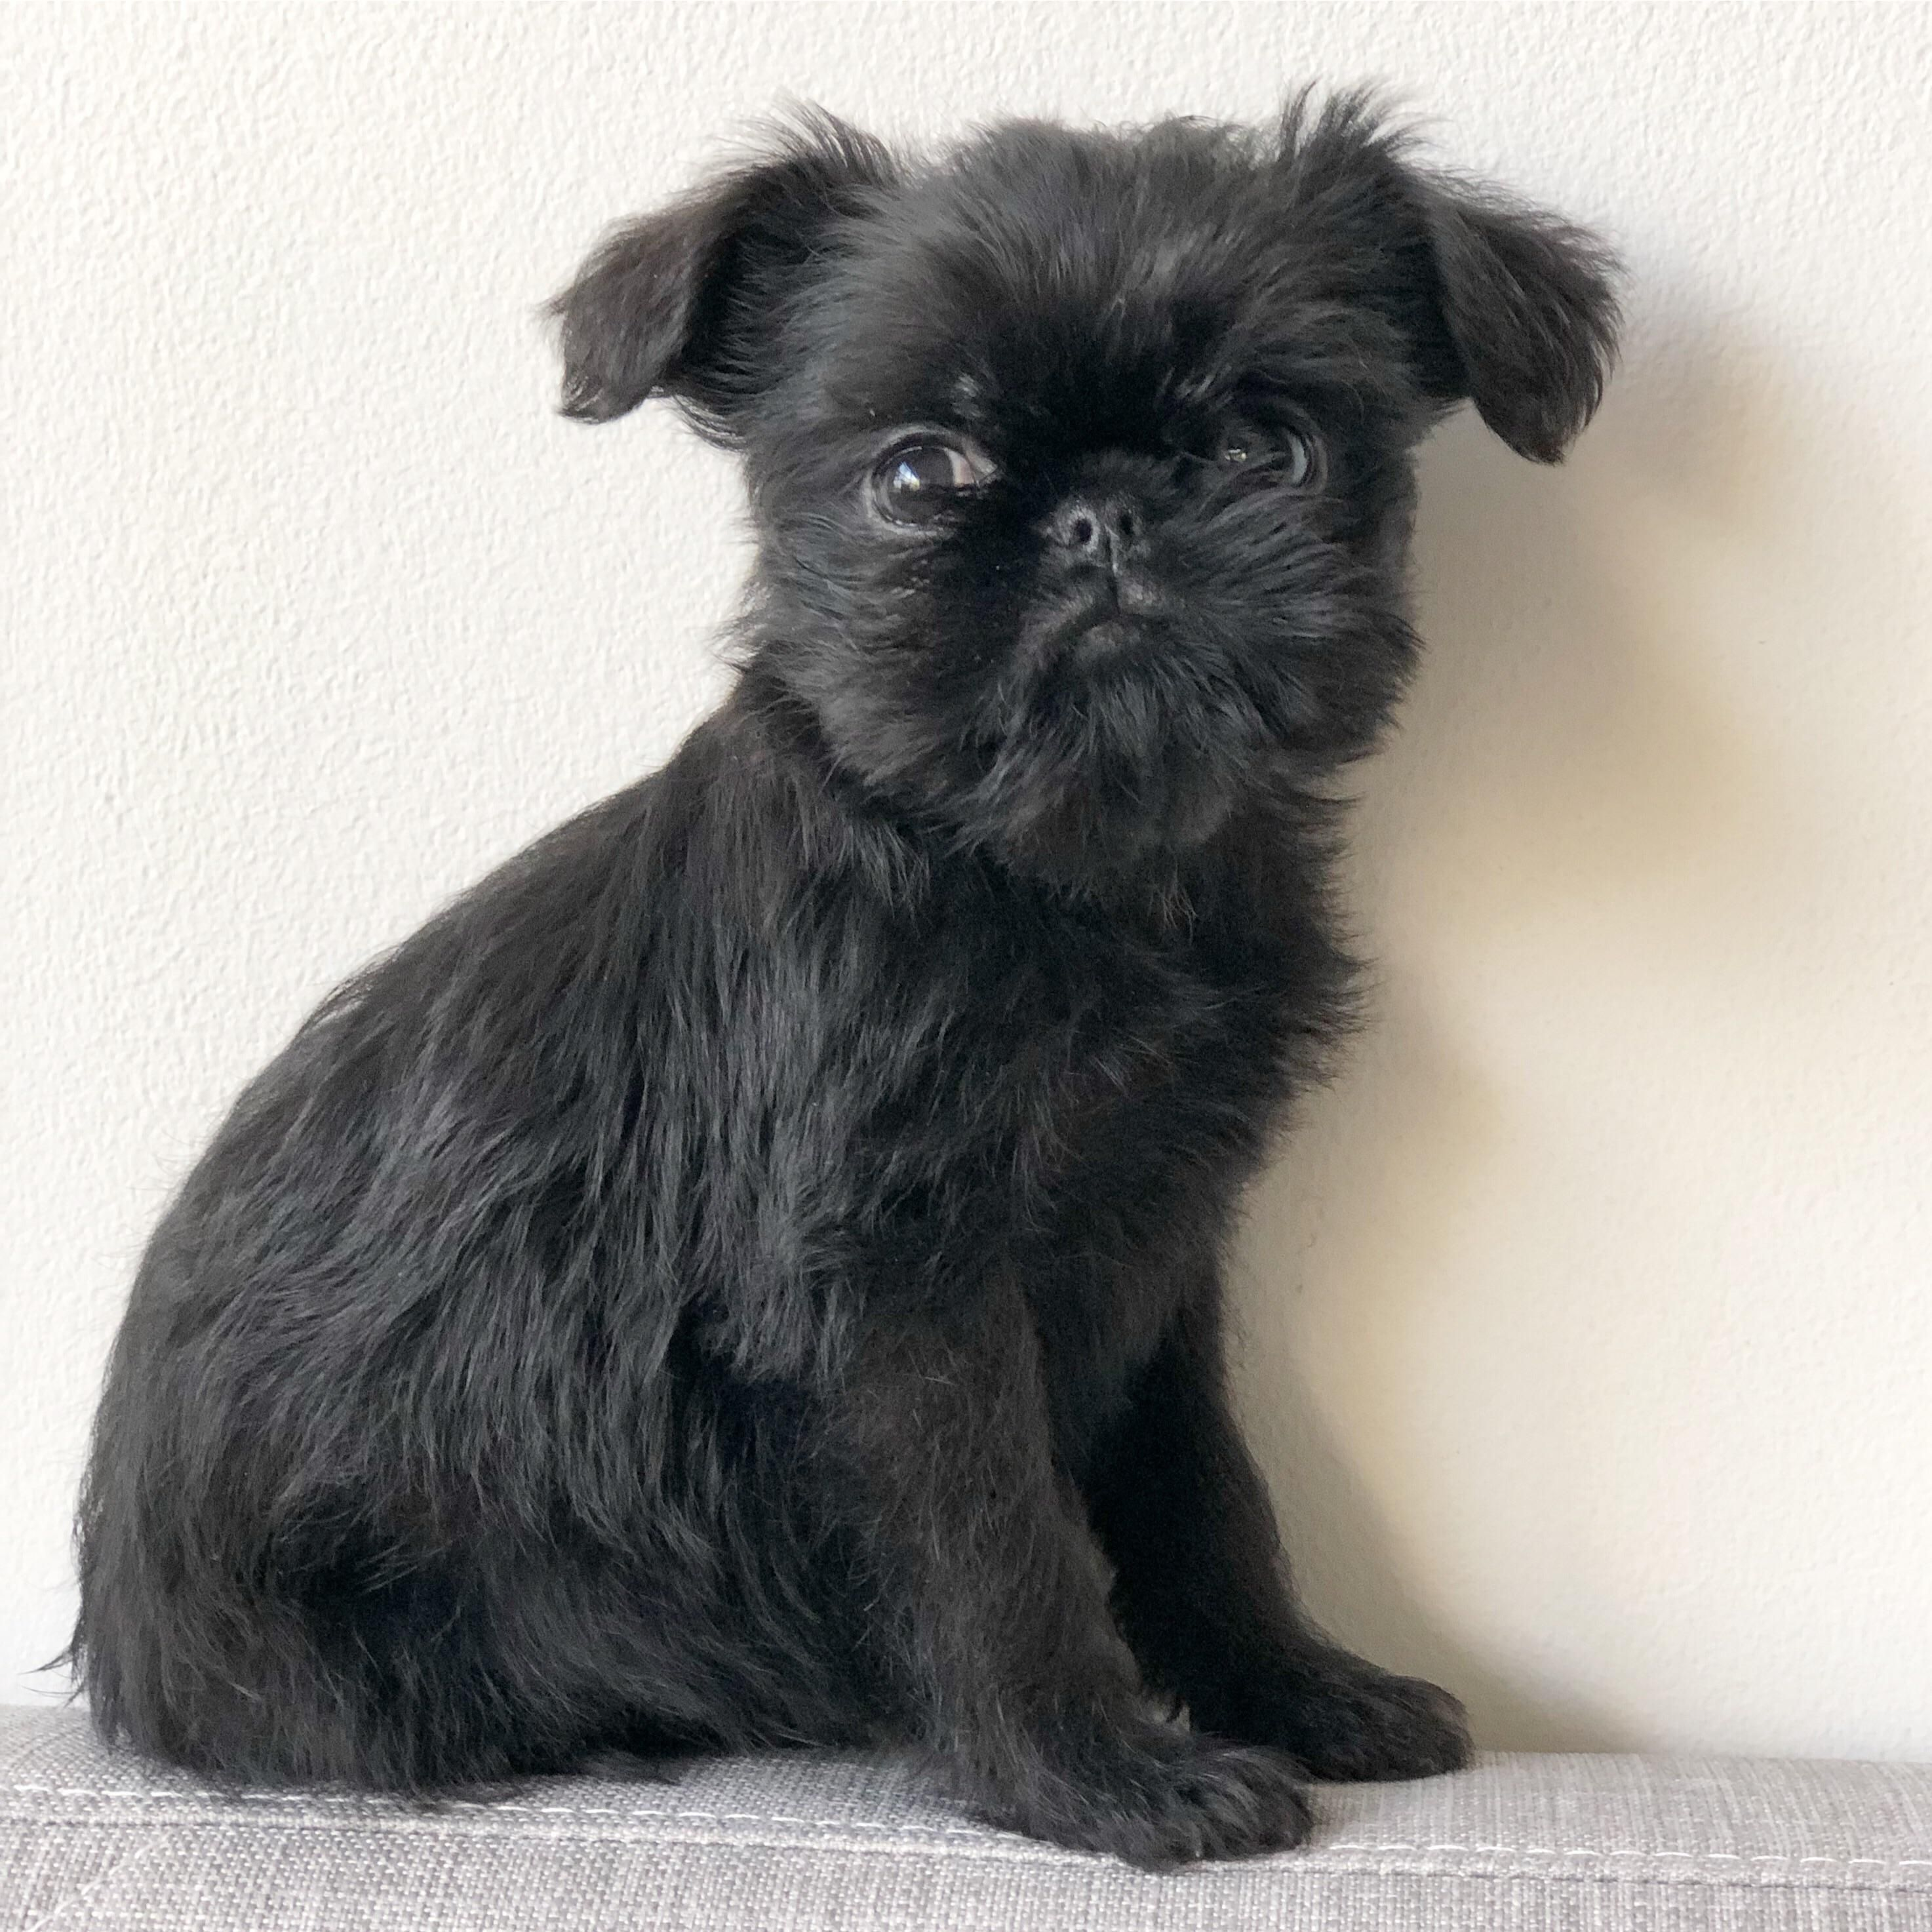 This Is My Brussels Griffon Puppy Hank Music Indieartist